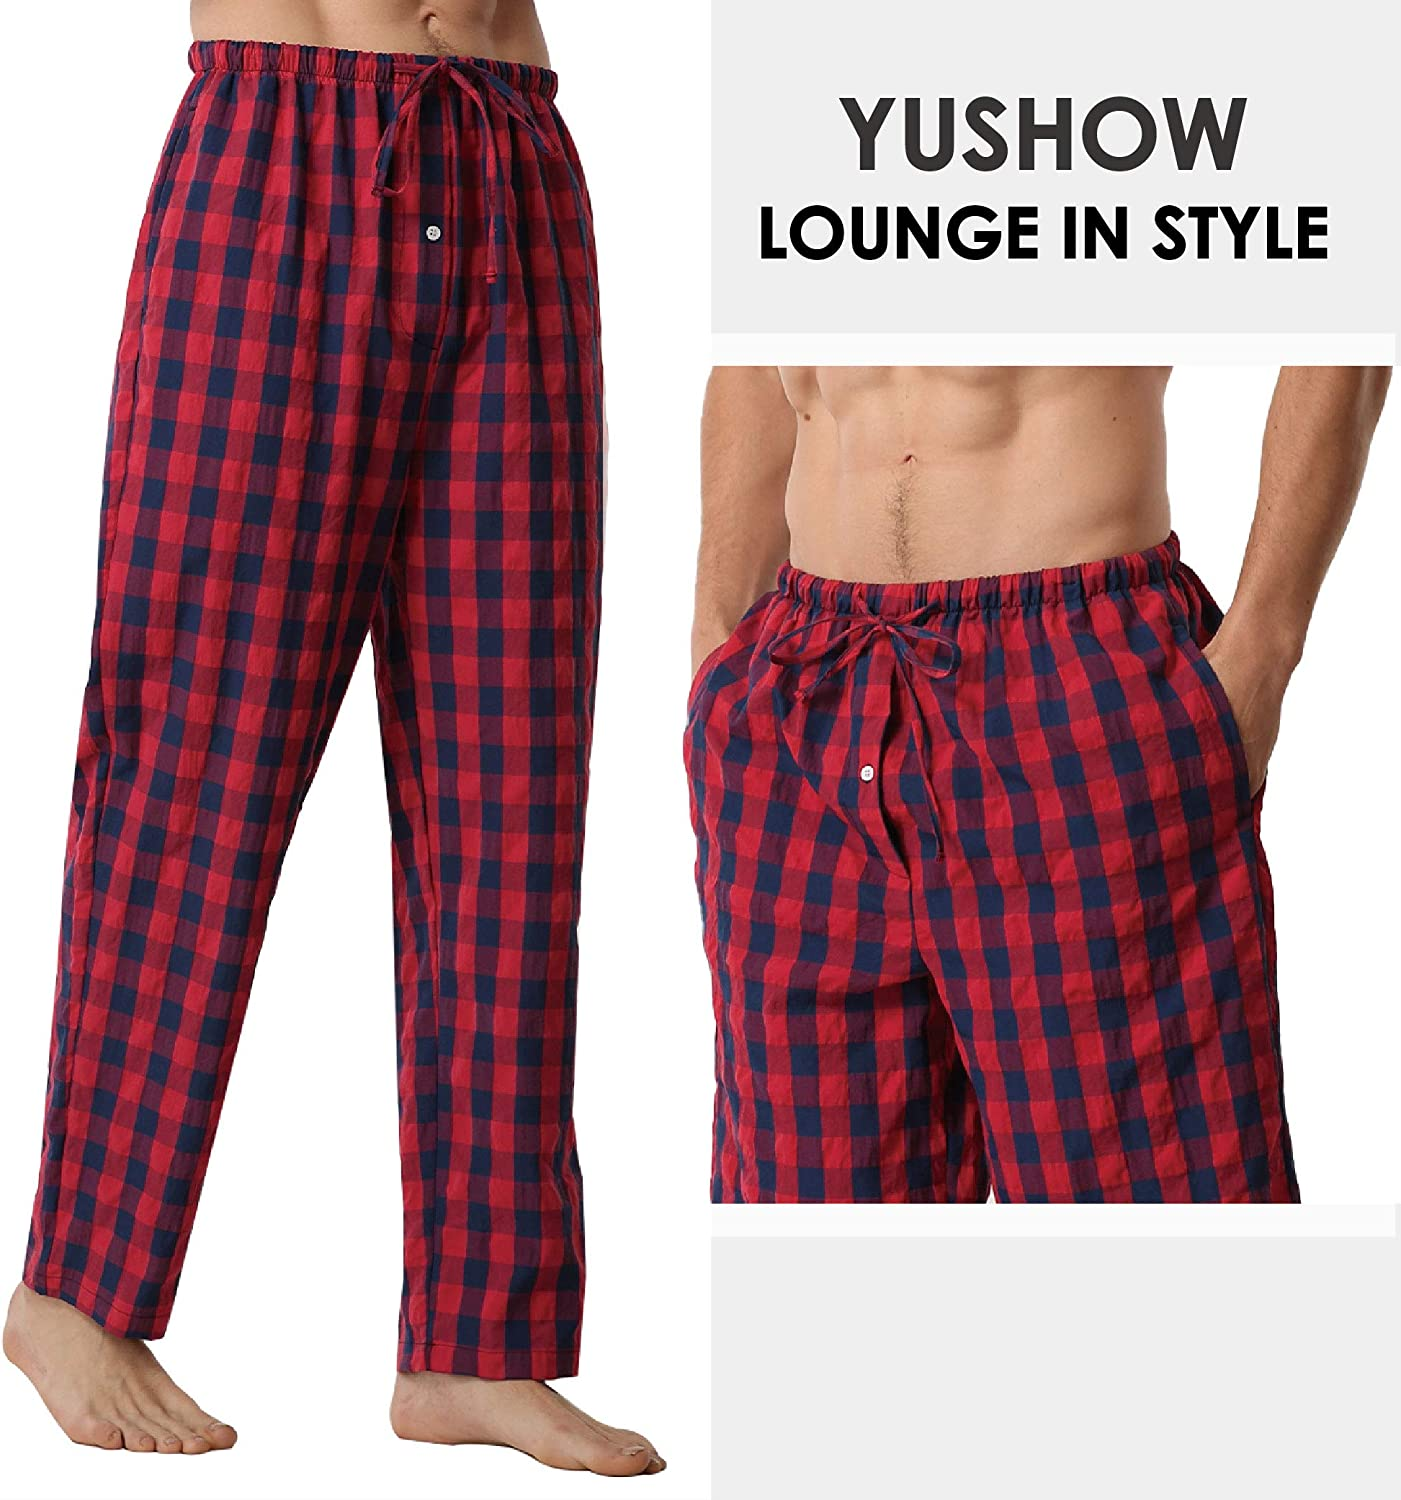 Mens Pyjamas Bottoms 2 Pack Comfy Cotton Checked Men Lounge Pants with Pockets Pyjama Trousers